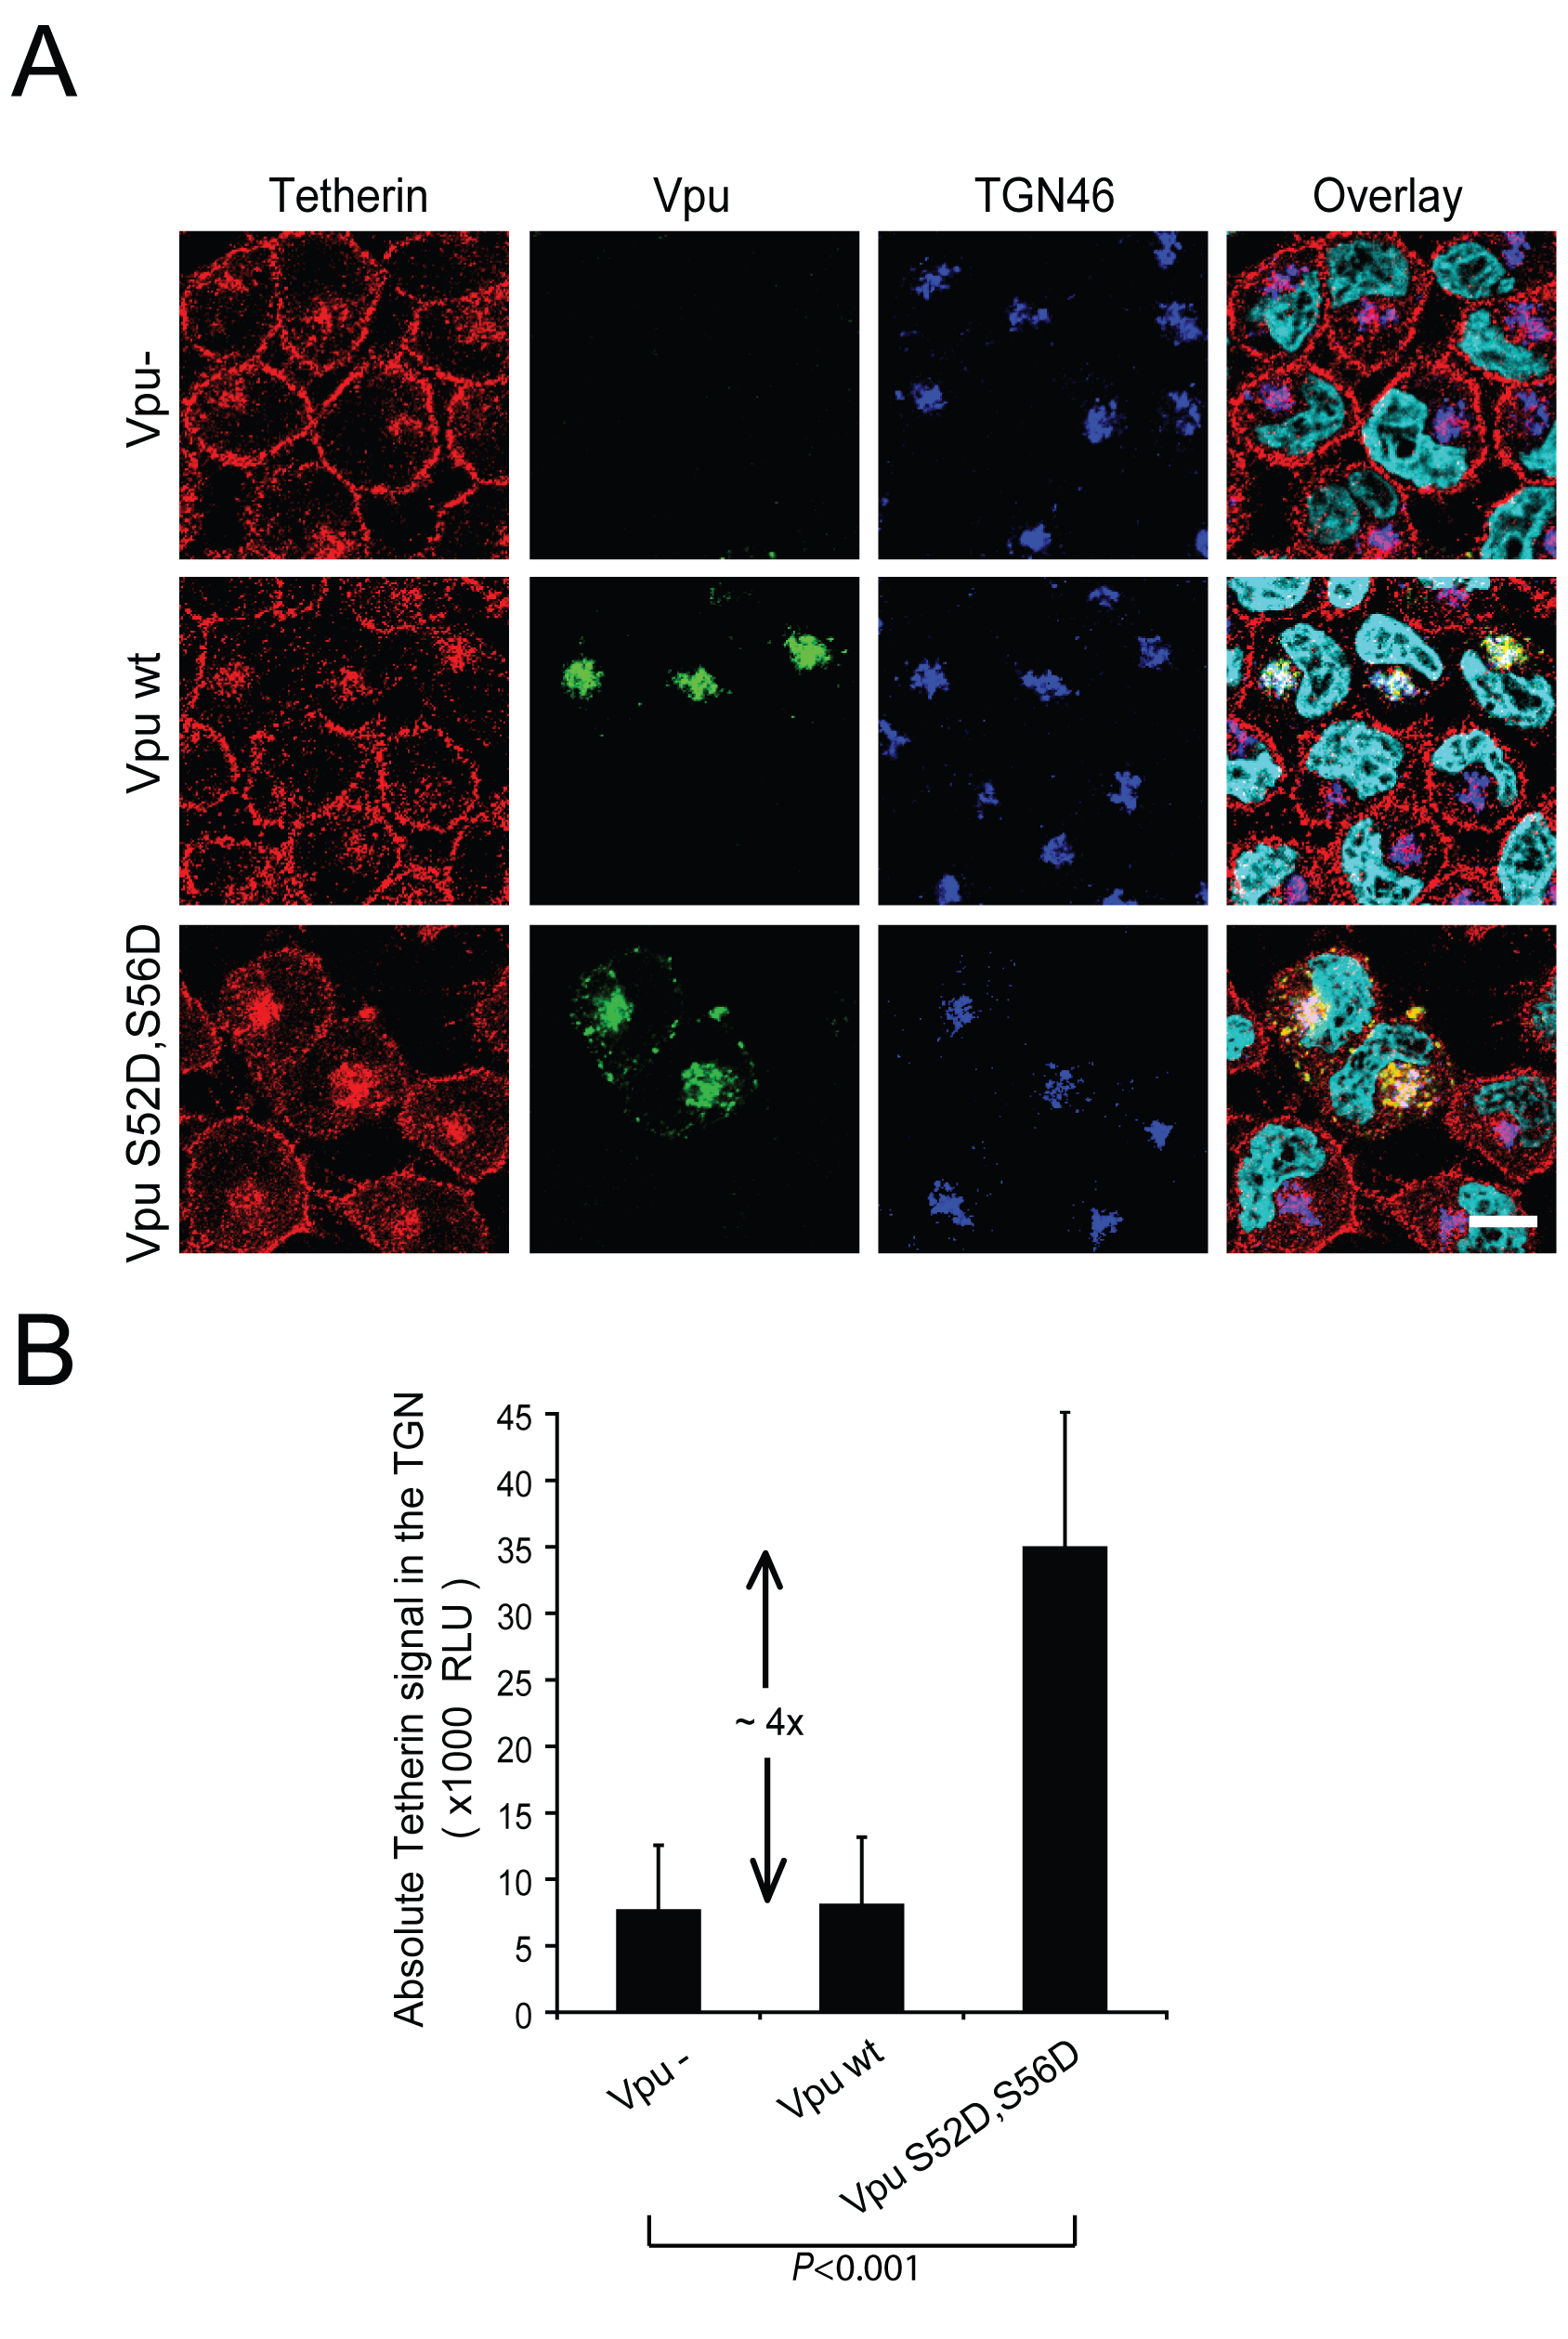 Vpu expression causes a re-localization of the cellular pool of Tetherin in a perinuclear compartment.